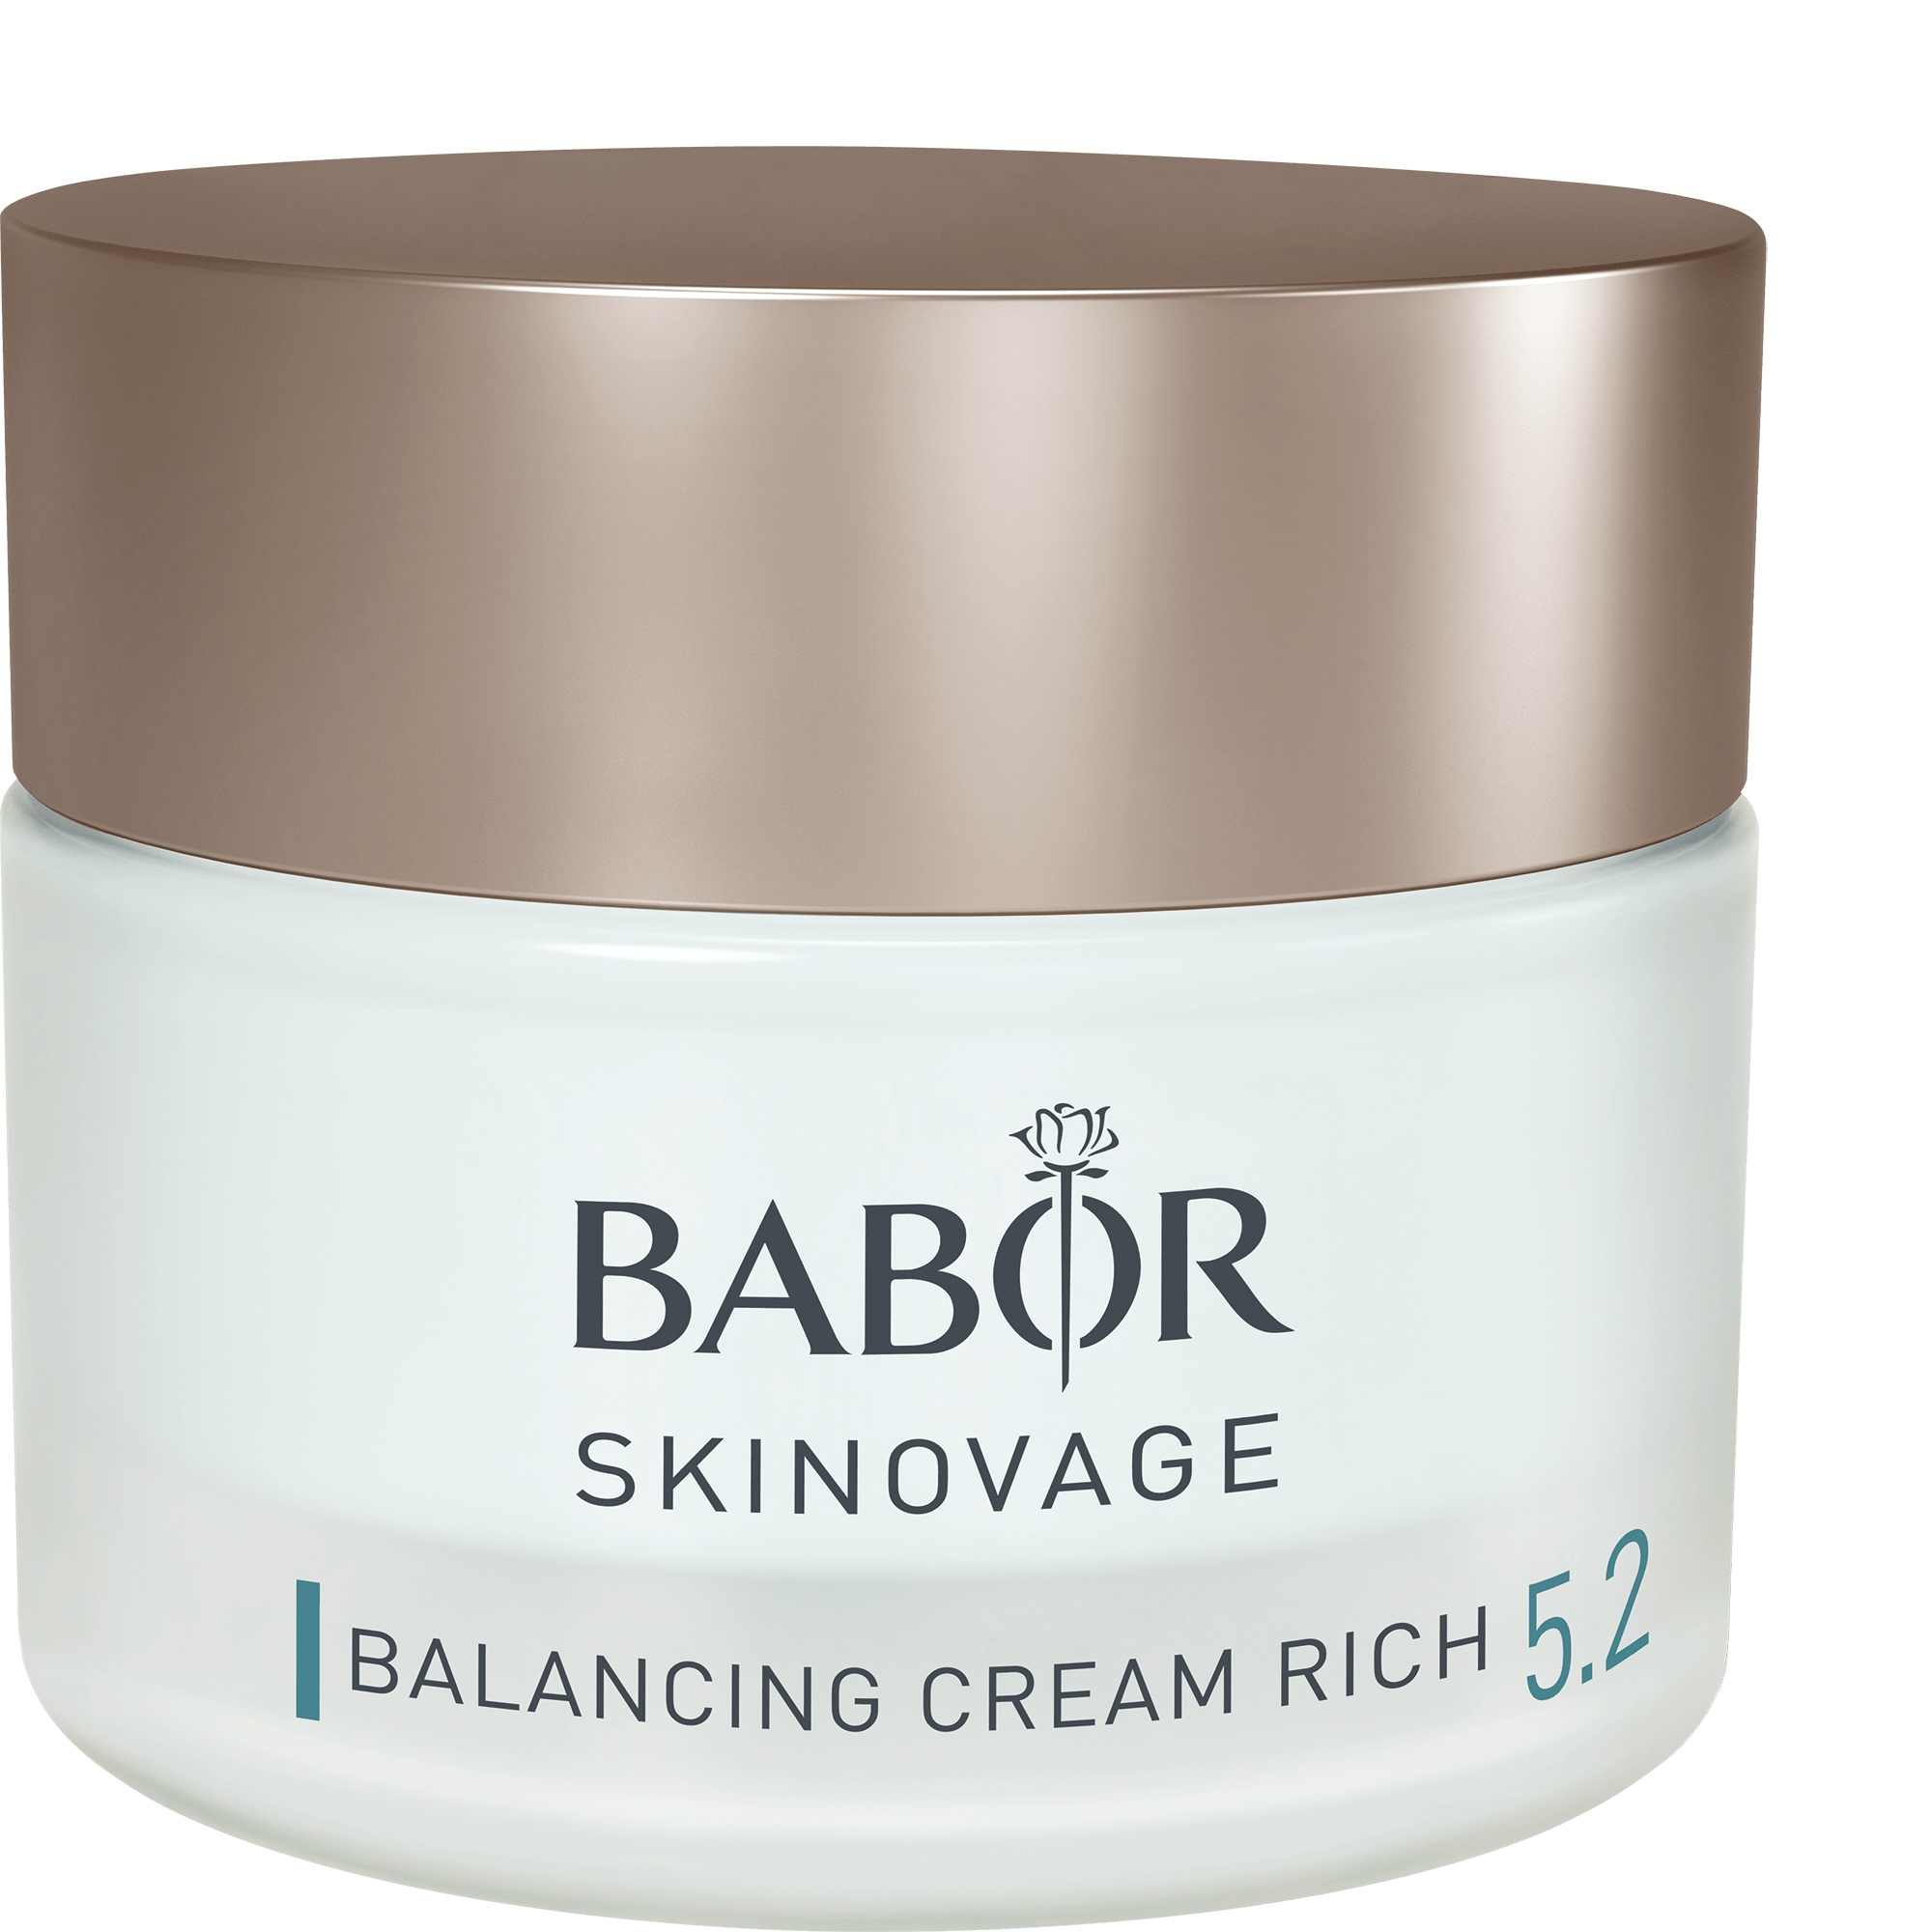 Skinovage Balancing Cream Rich 50 ml